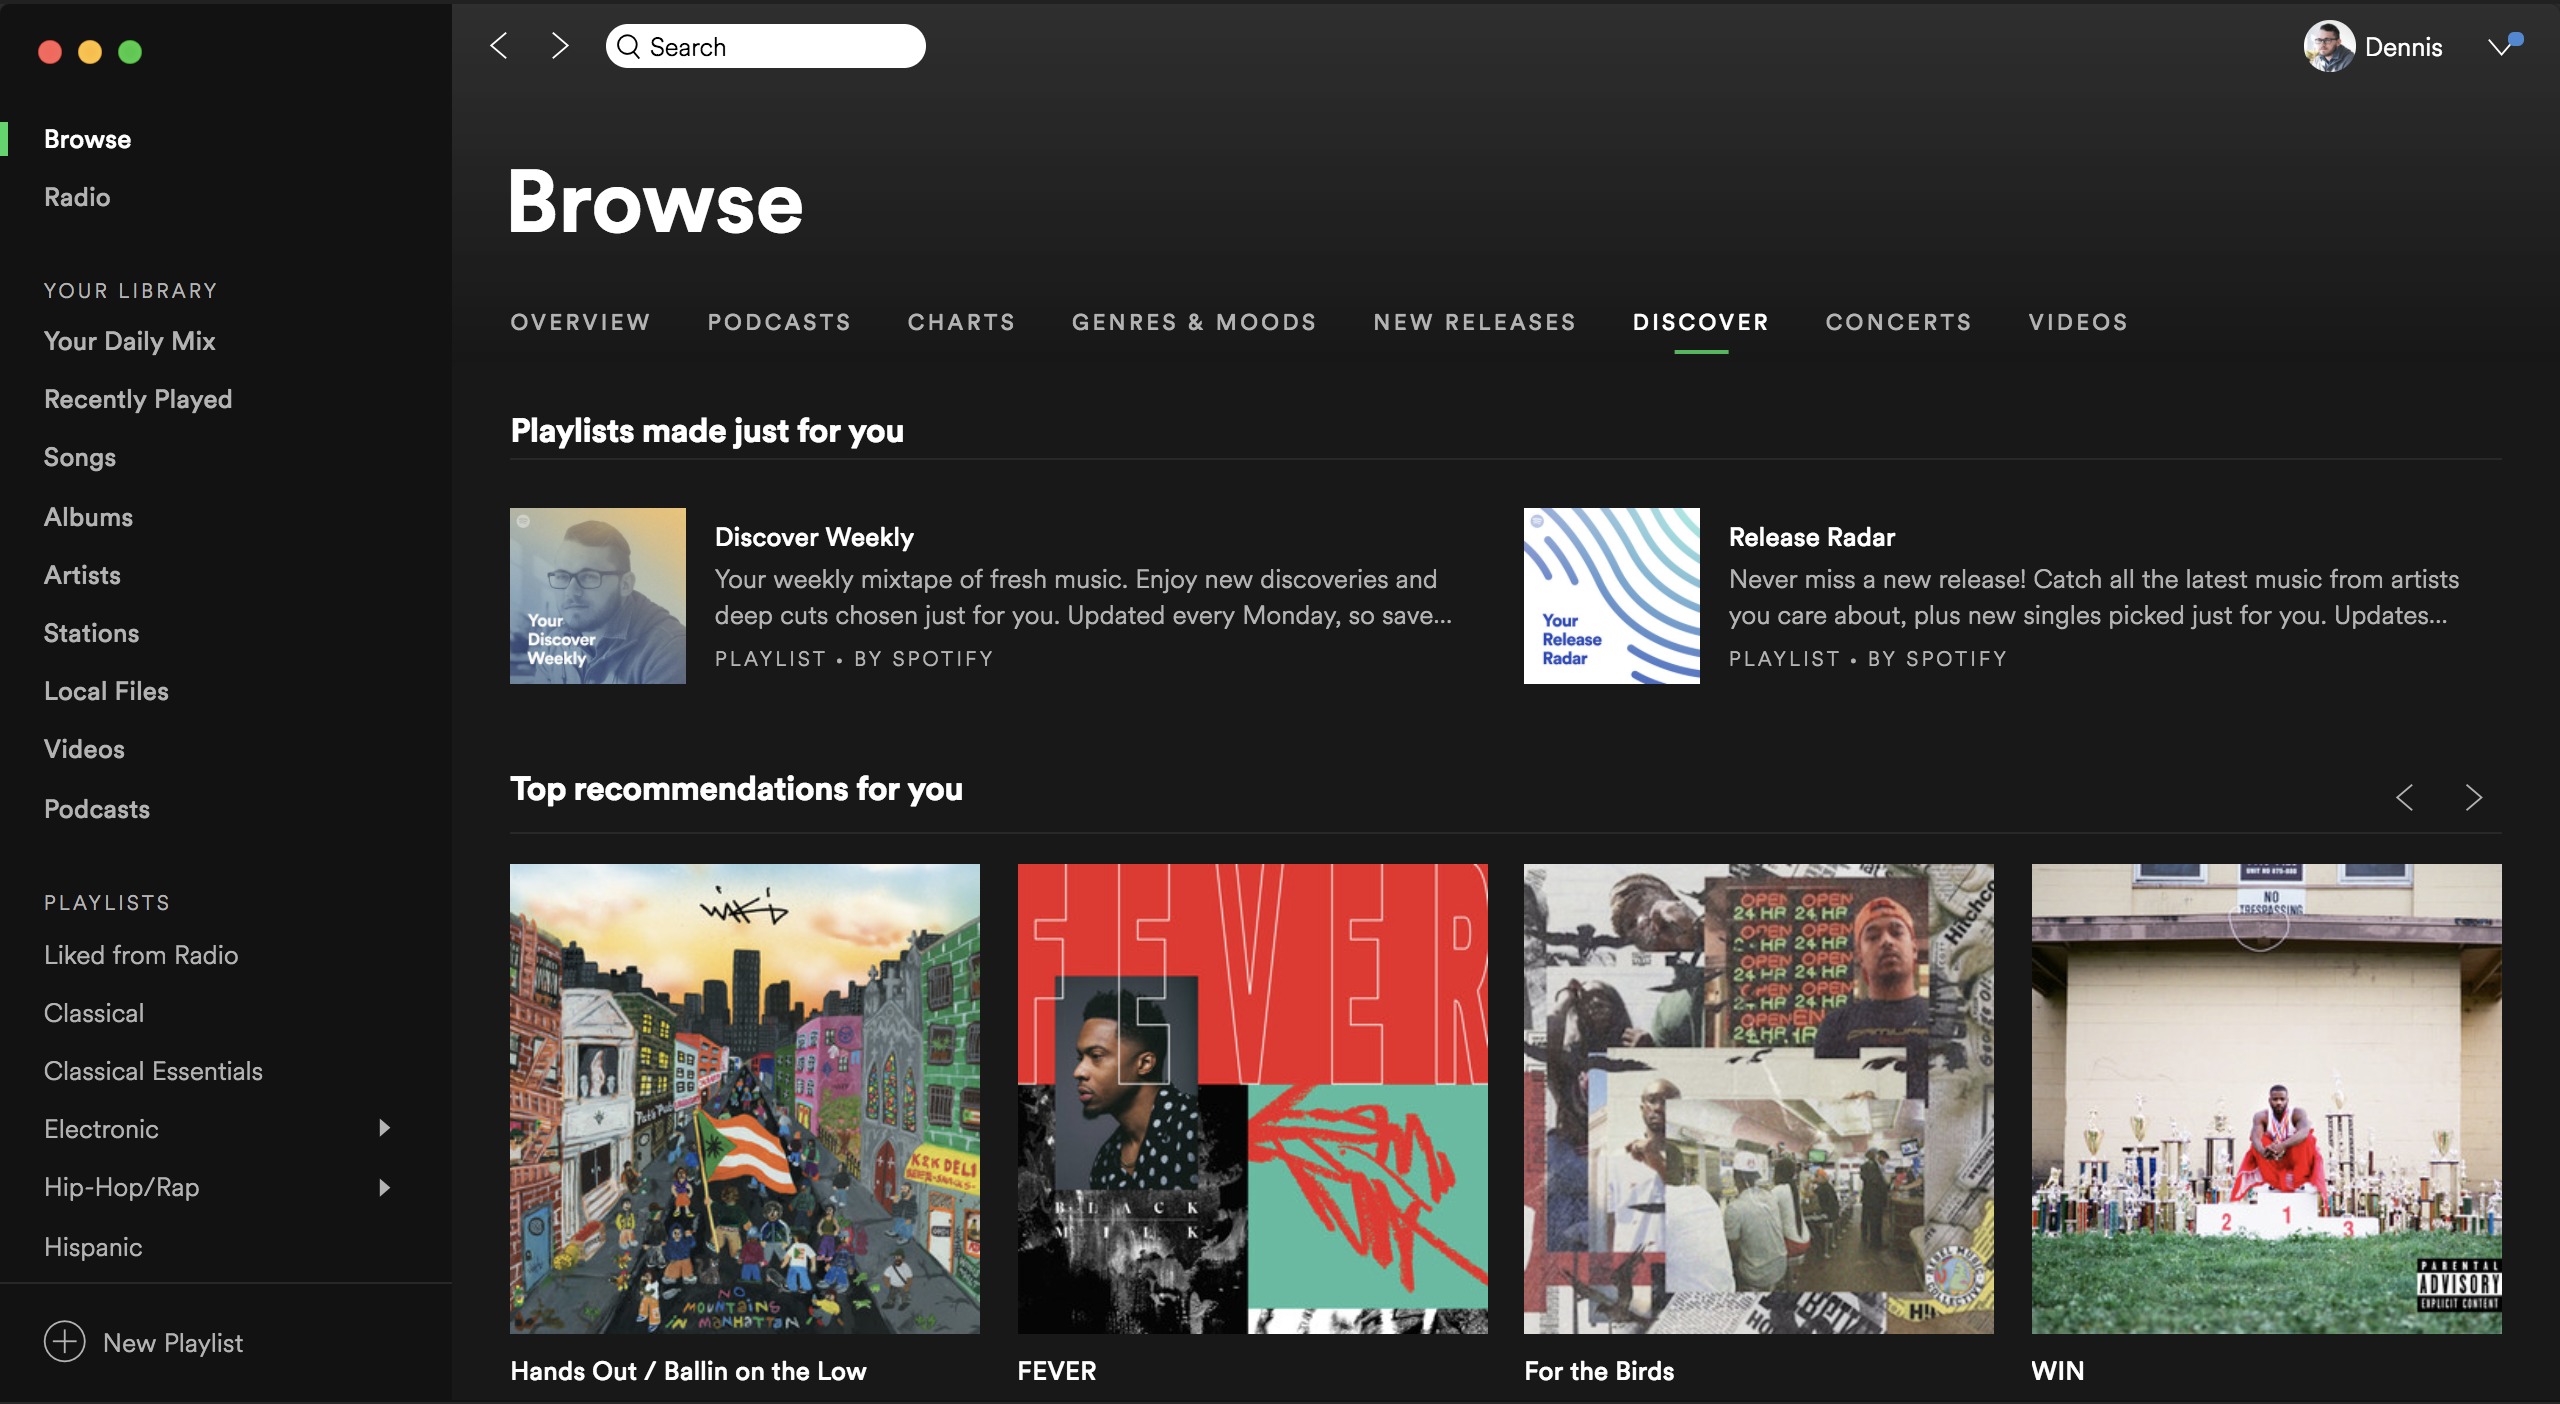 Browse view of Spotify